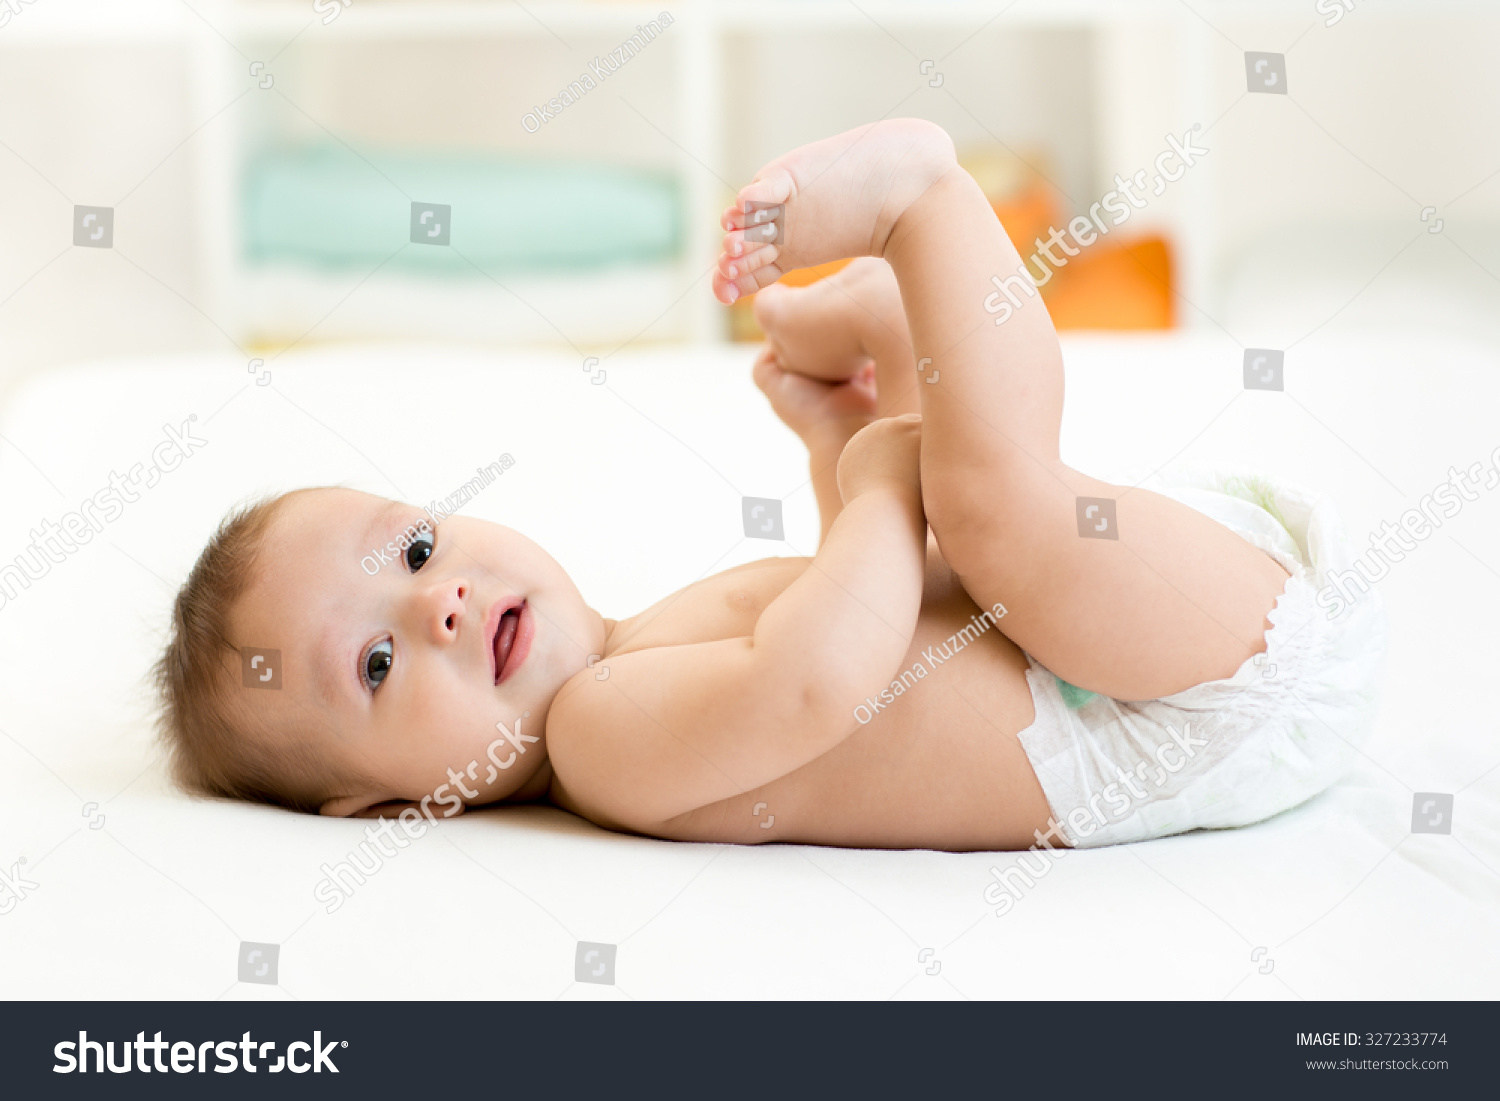 cute baby child little boy lying stock photo (100% legal protection